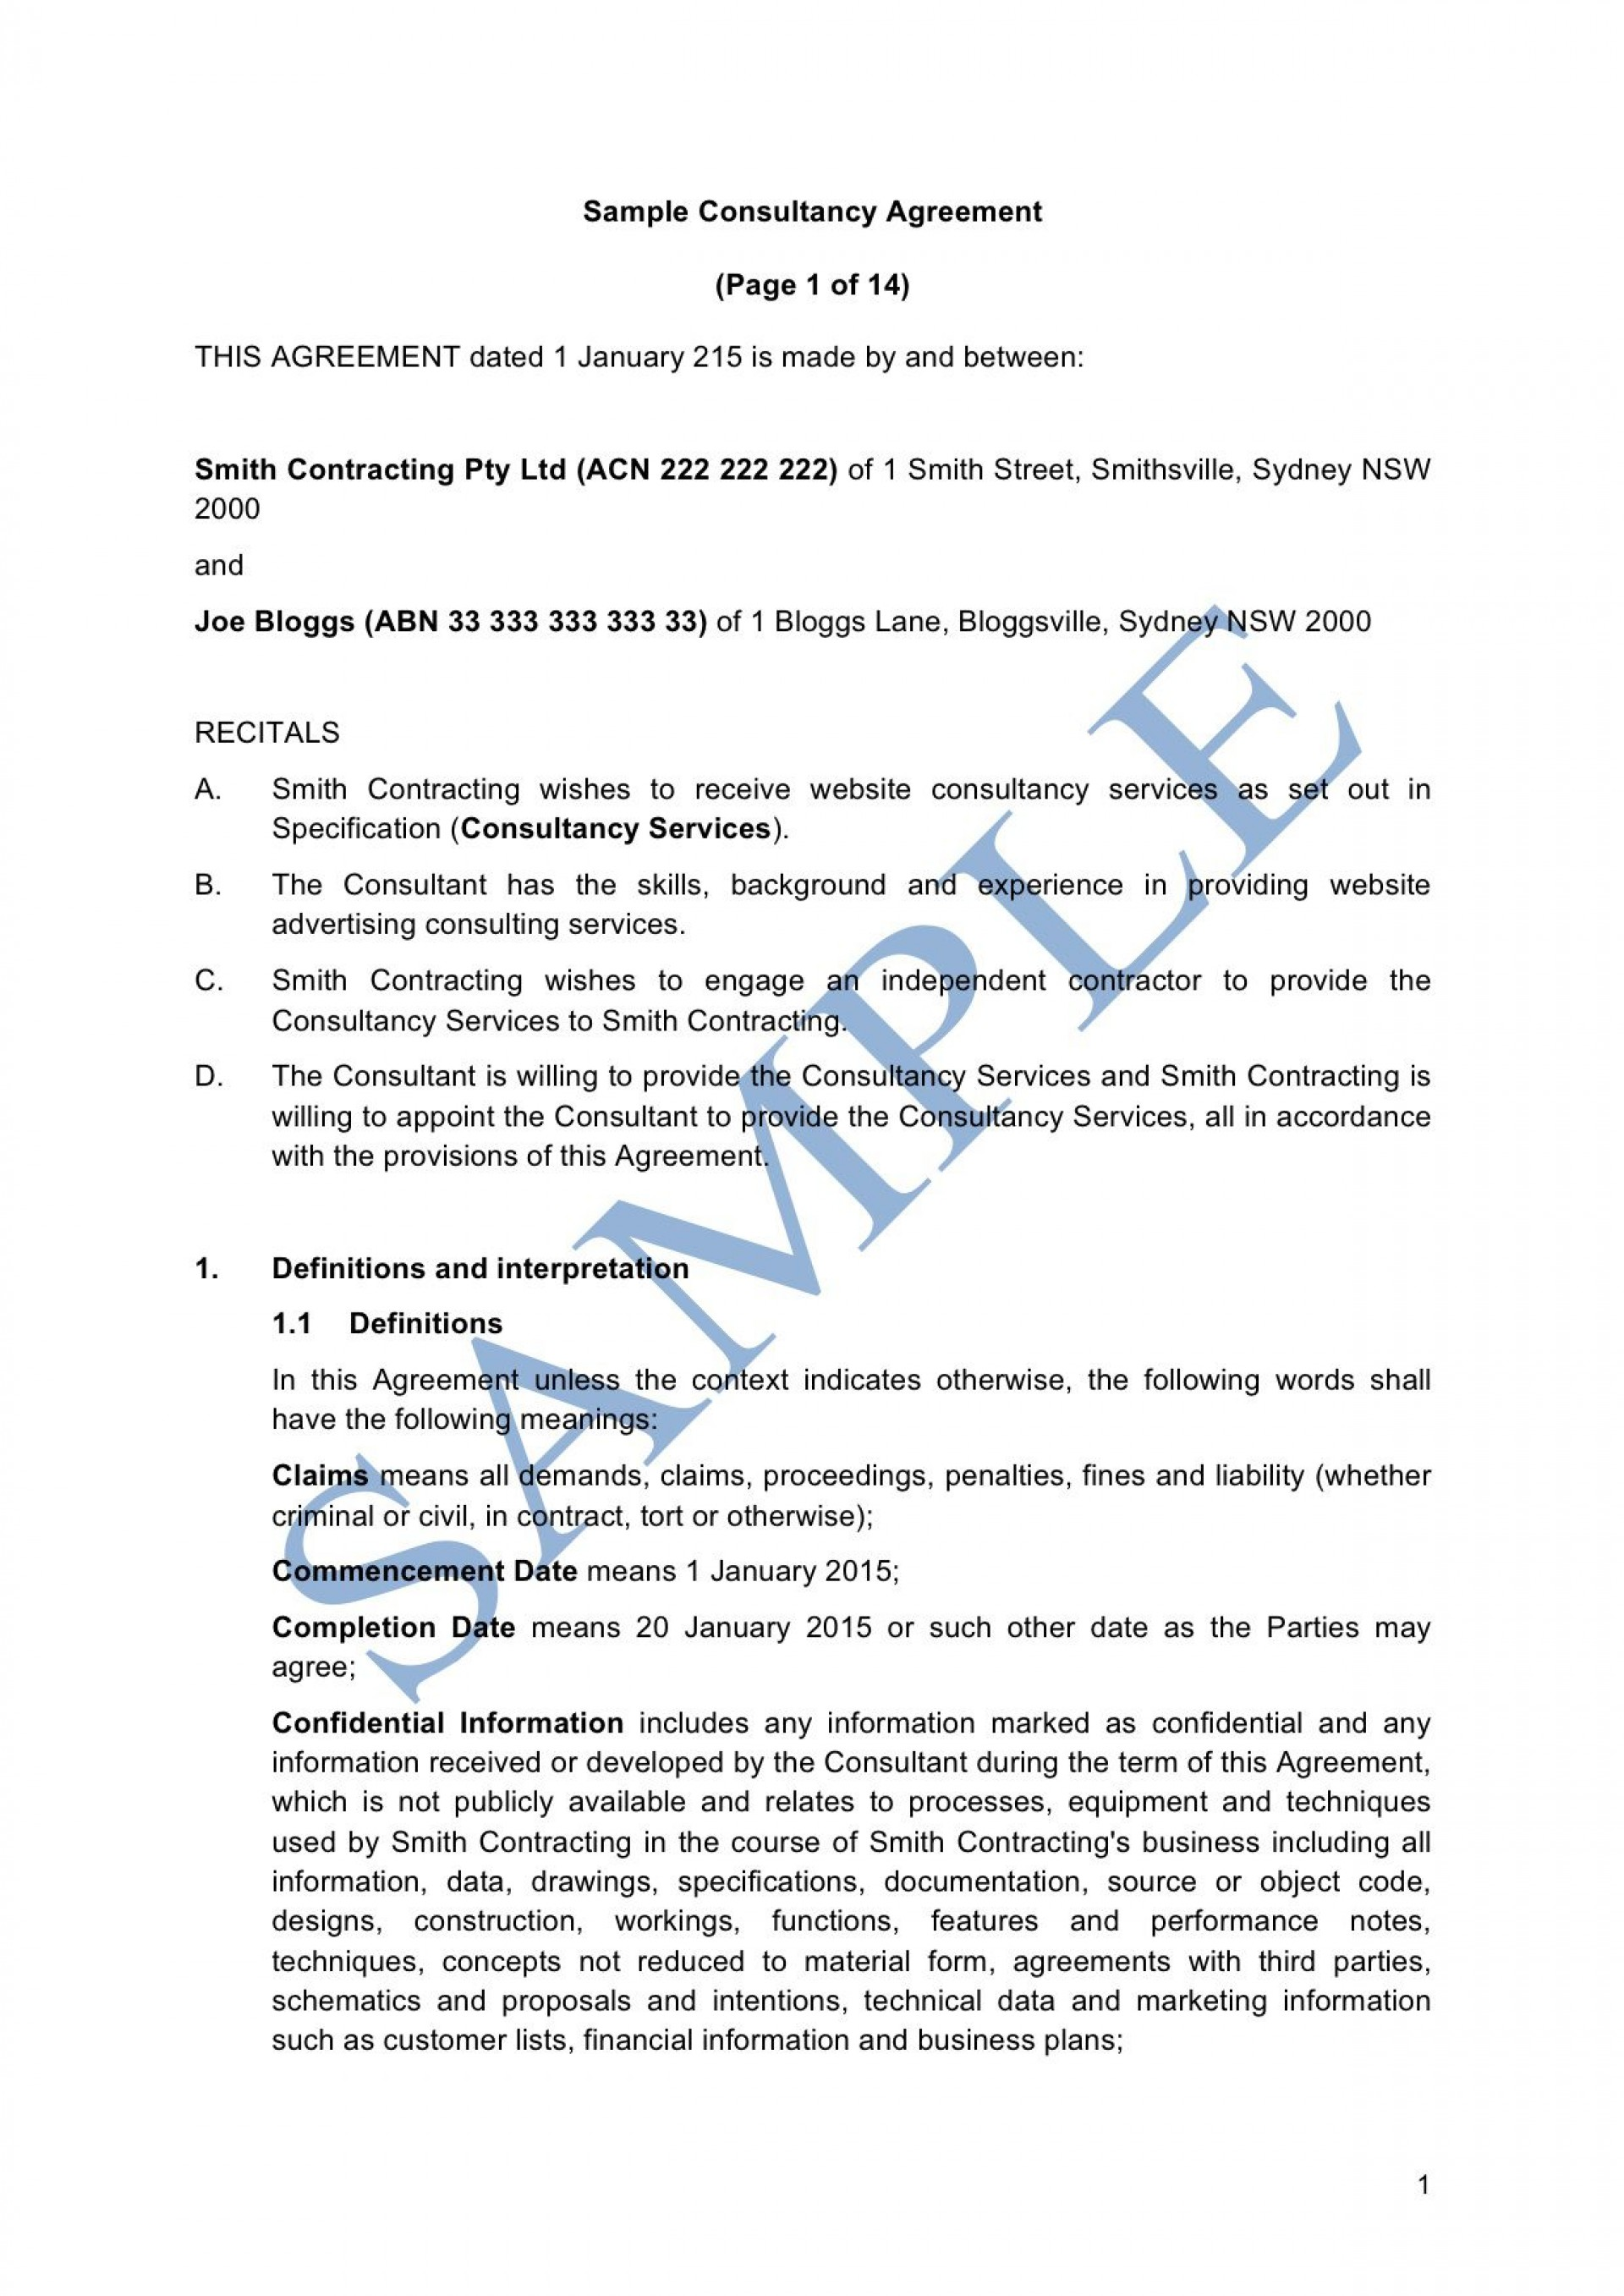 007 Formidable Consulting Agreement Template Word High Def  Sample Free1920